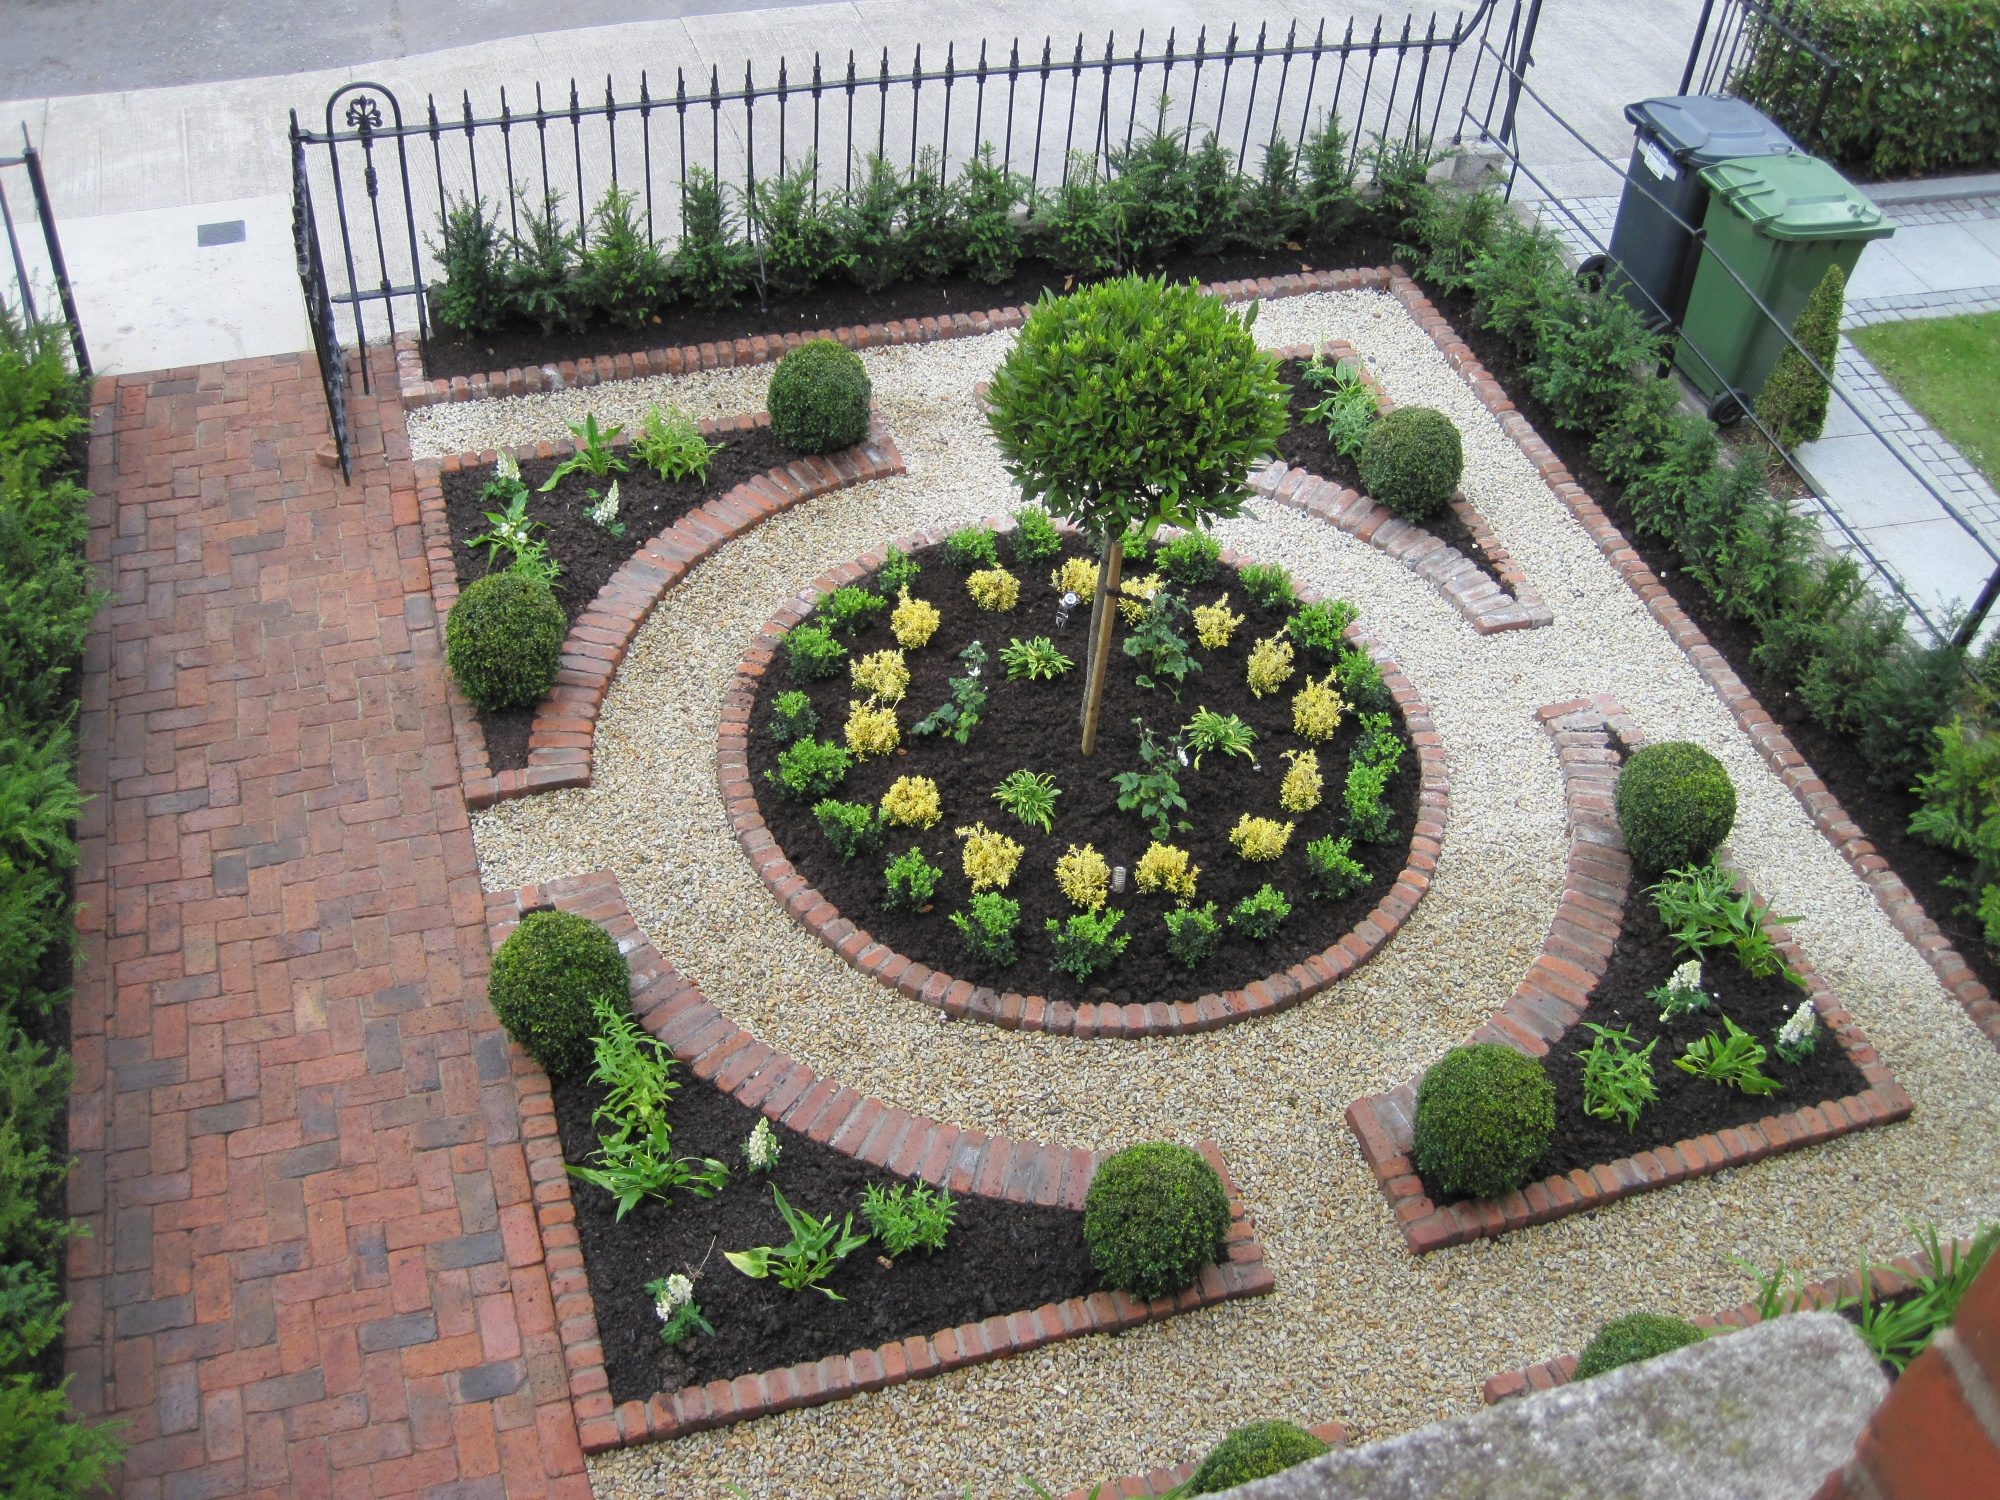 Garden design ideas inspiration advice for all styles for Garden design plans ideas